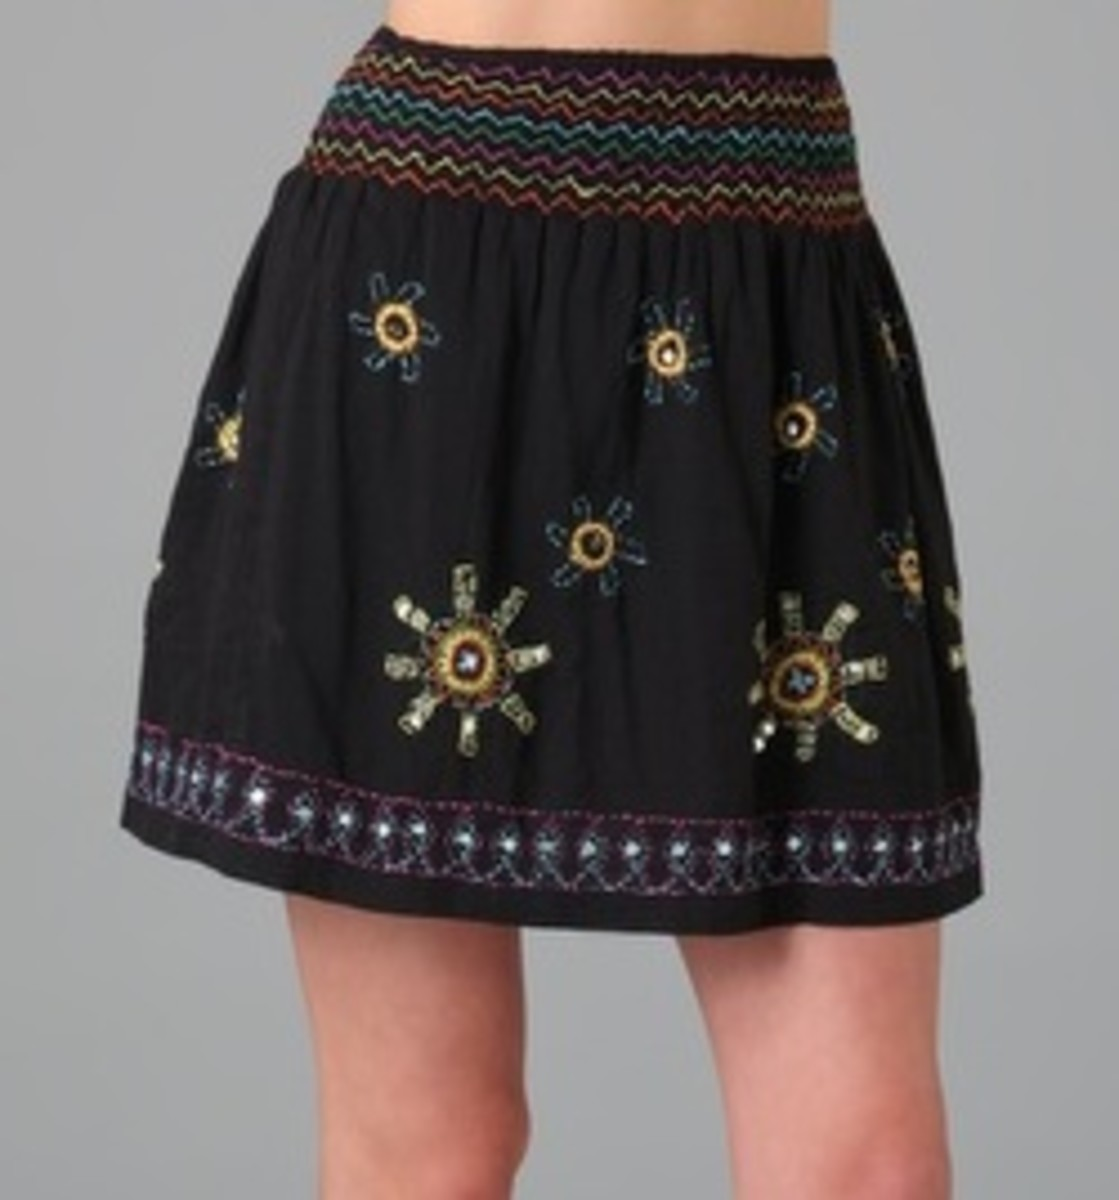 If you aren't ready to go full-on traditional this Cinco de Mayo, this more subdued skirt by Antik Batik is a nice twist on the original.